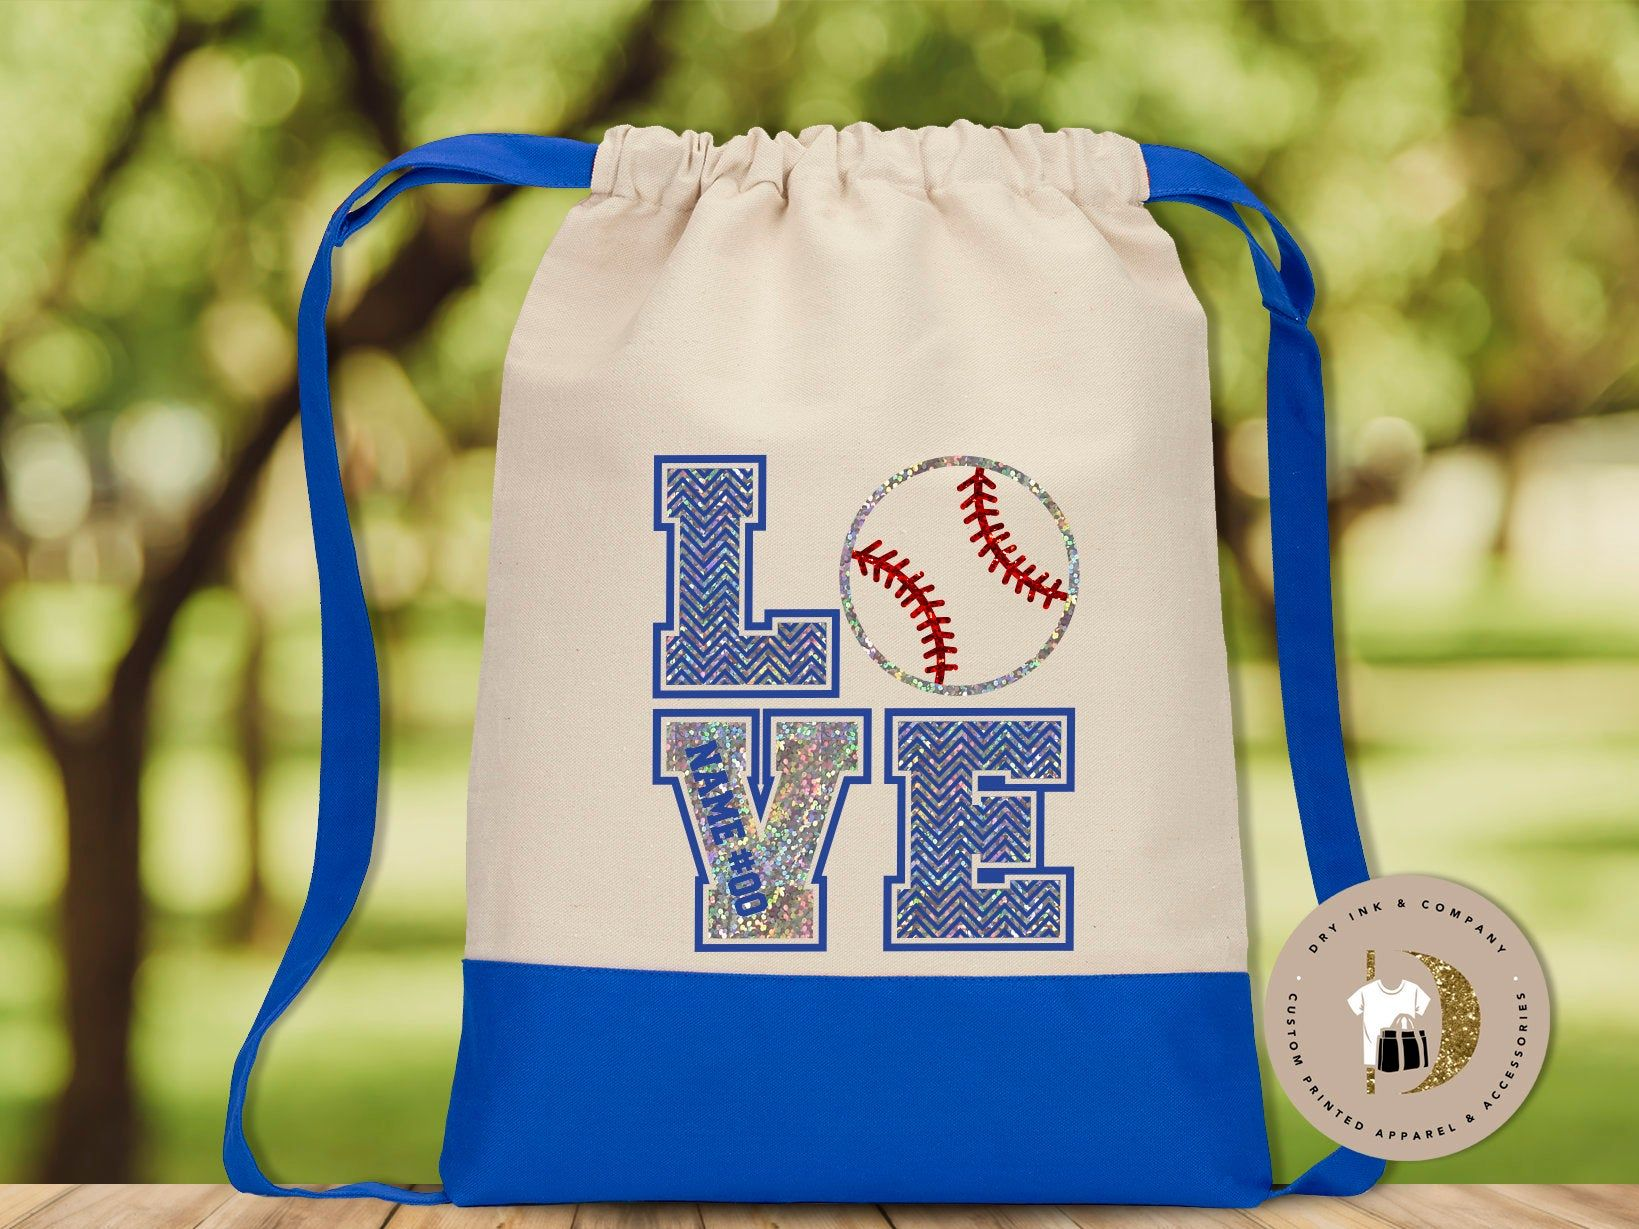 Personalized Glitter Bag With Love Baseball Design With Number Etsy In 2020 Navy Bag Bags Personalized Clothes